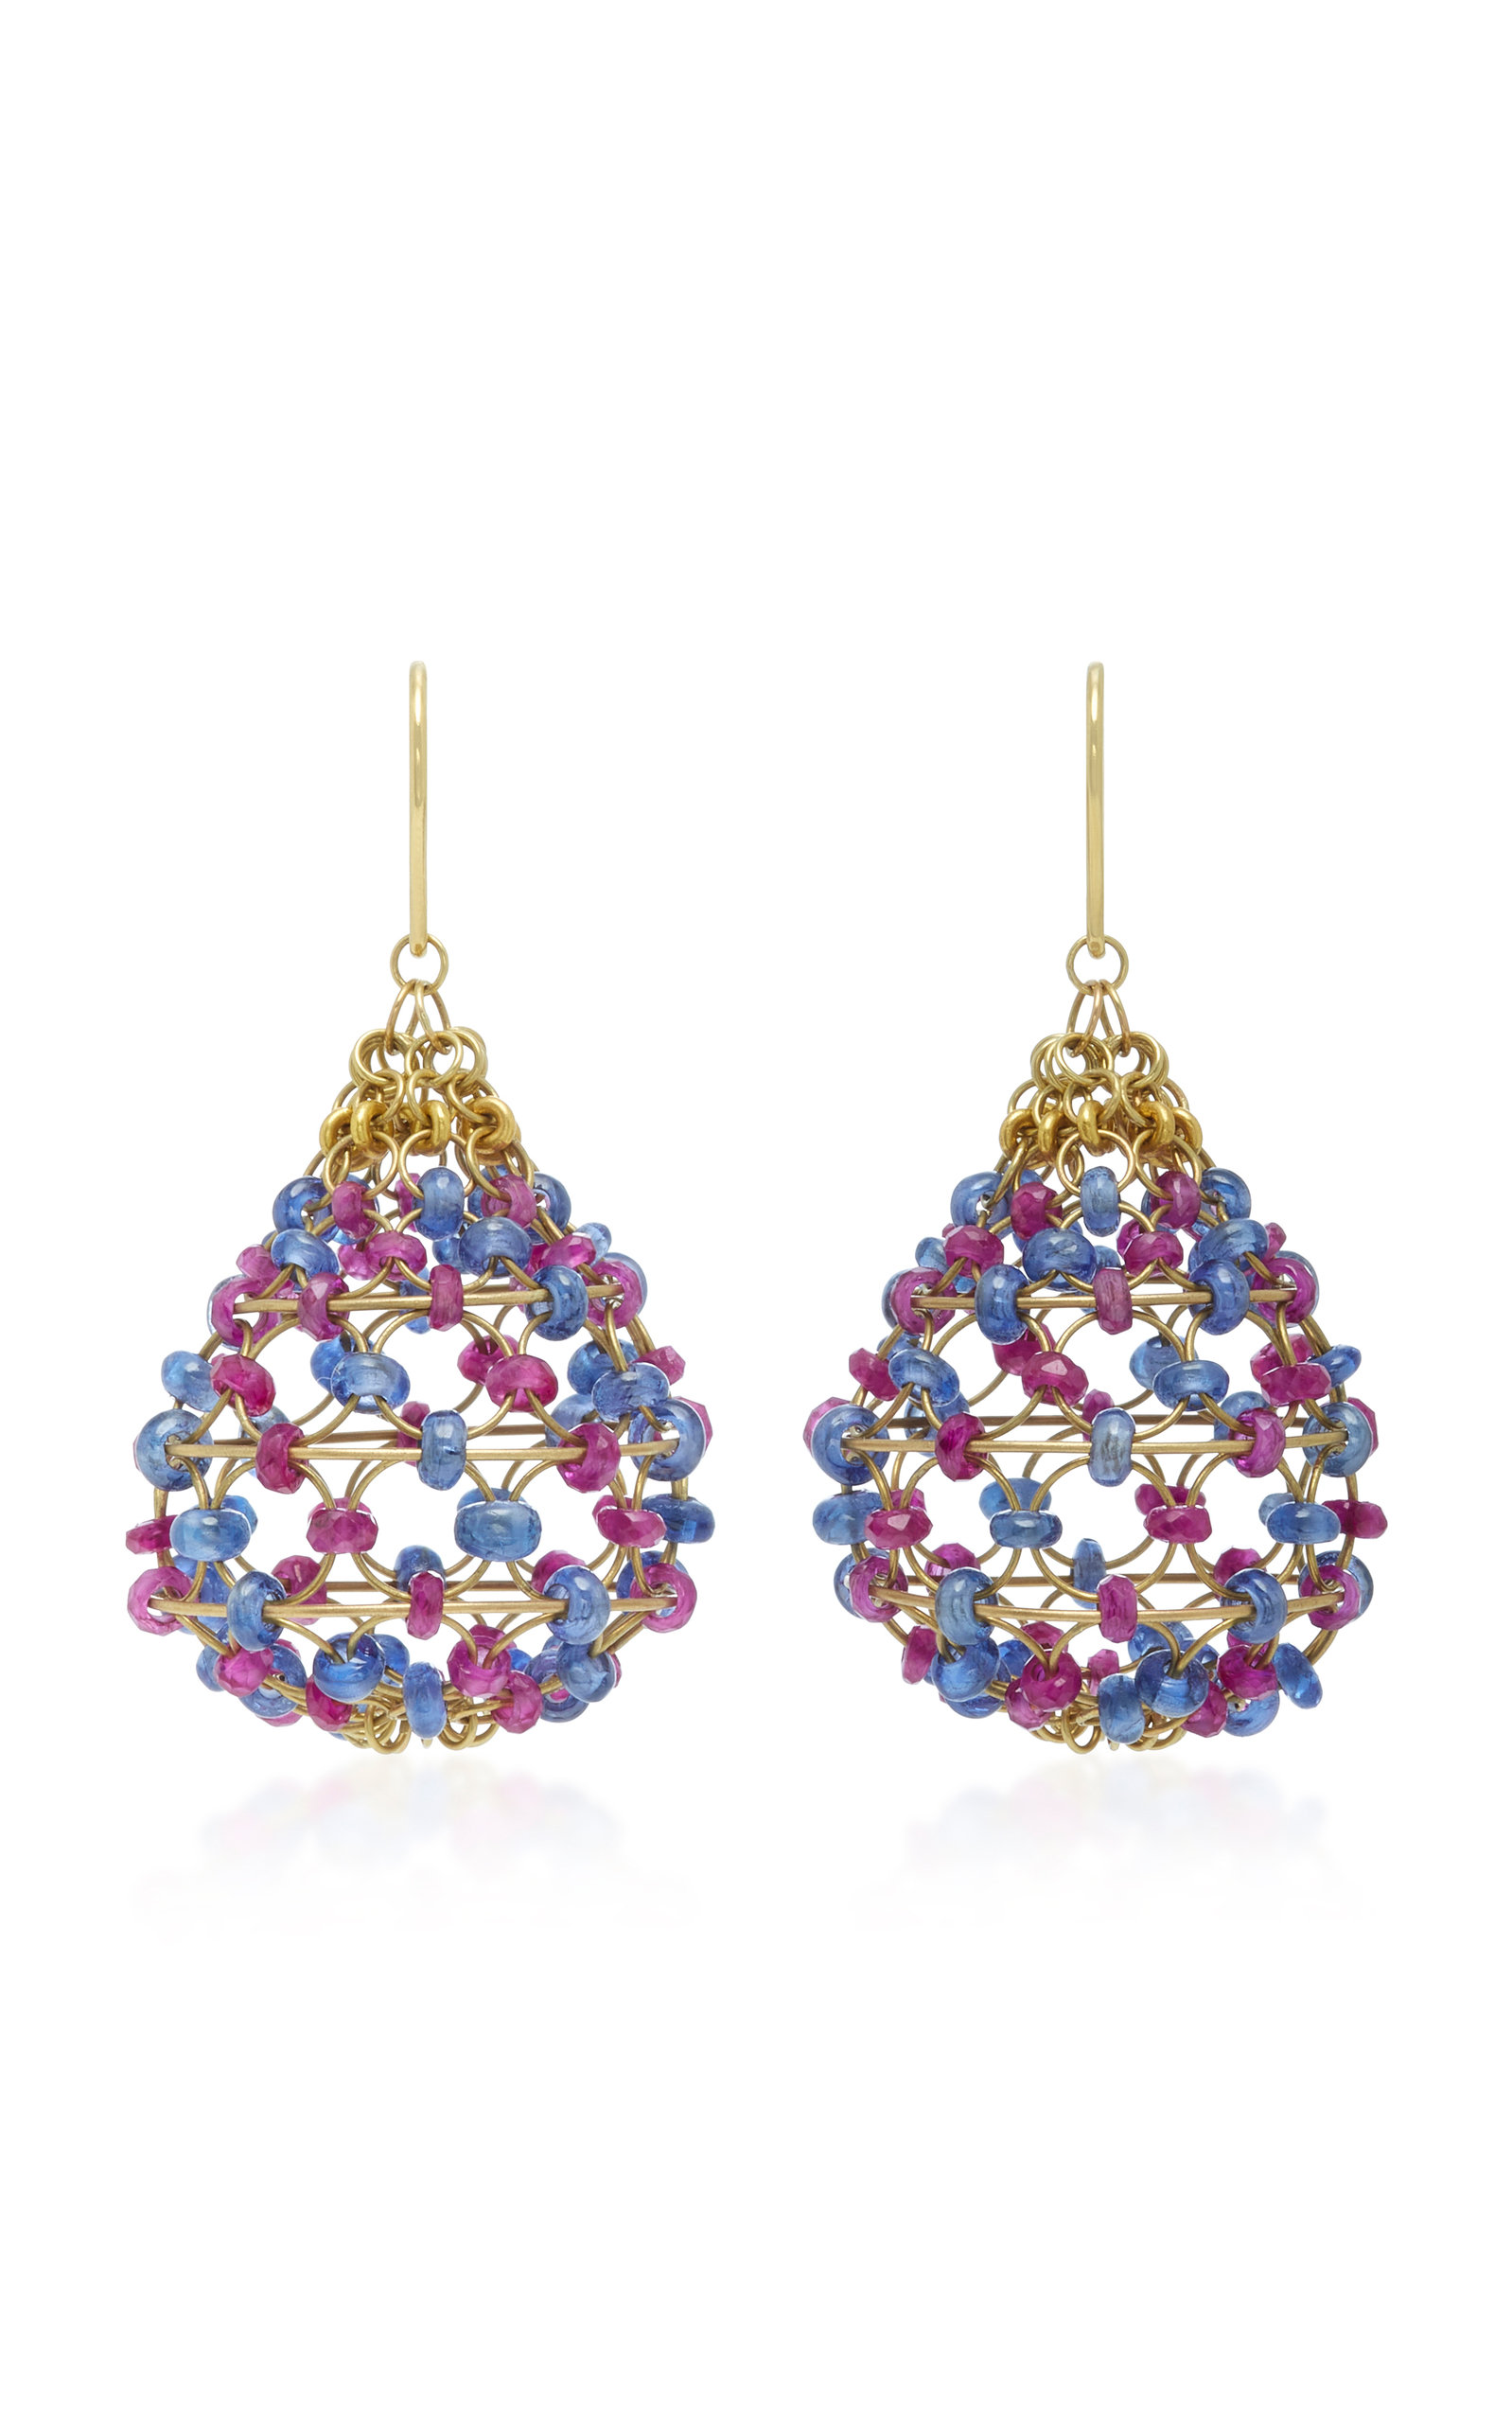 Russian Dome 18K Gold, Ruby and Cabochon Sapphire Beaded Earrings